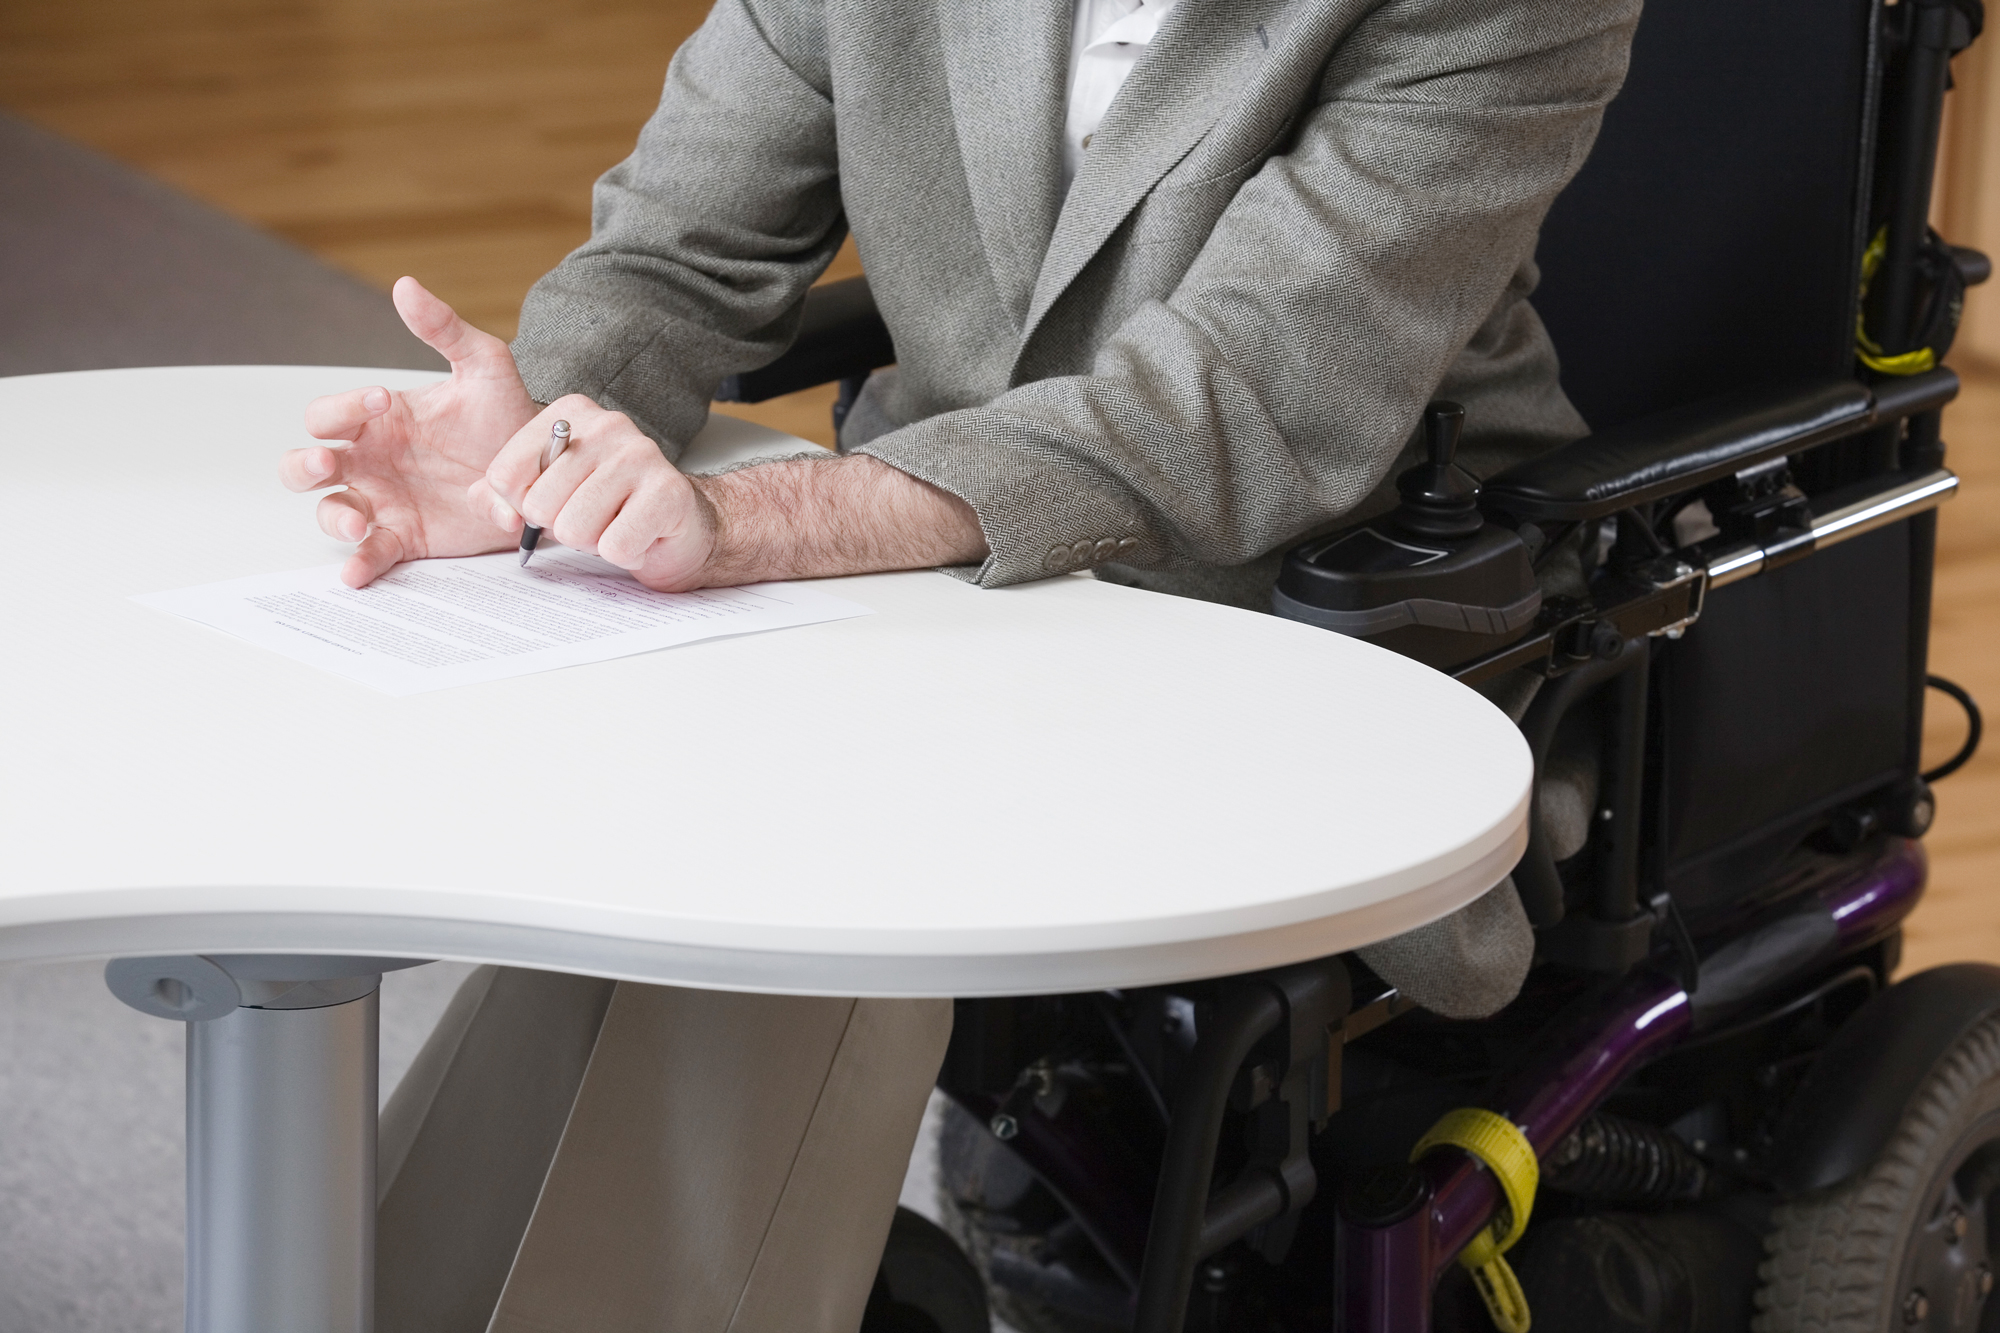 Image of wheelchair user at a table